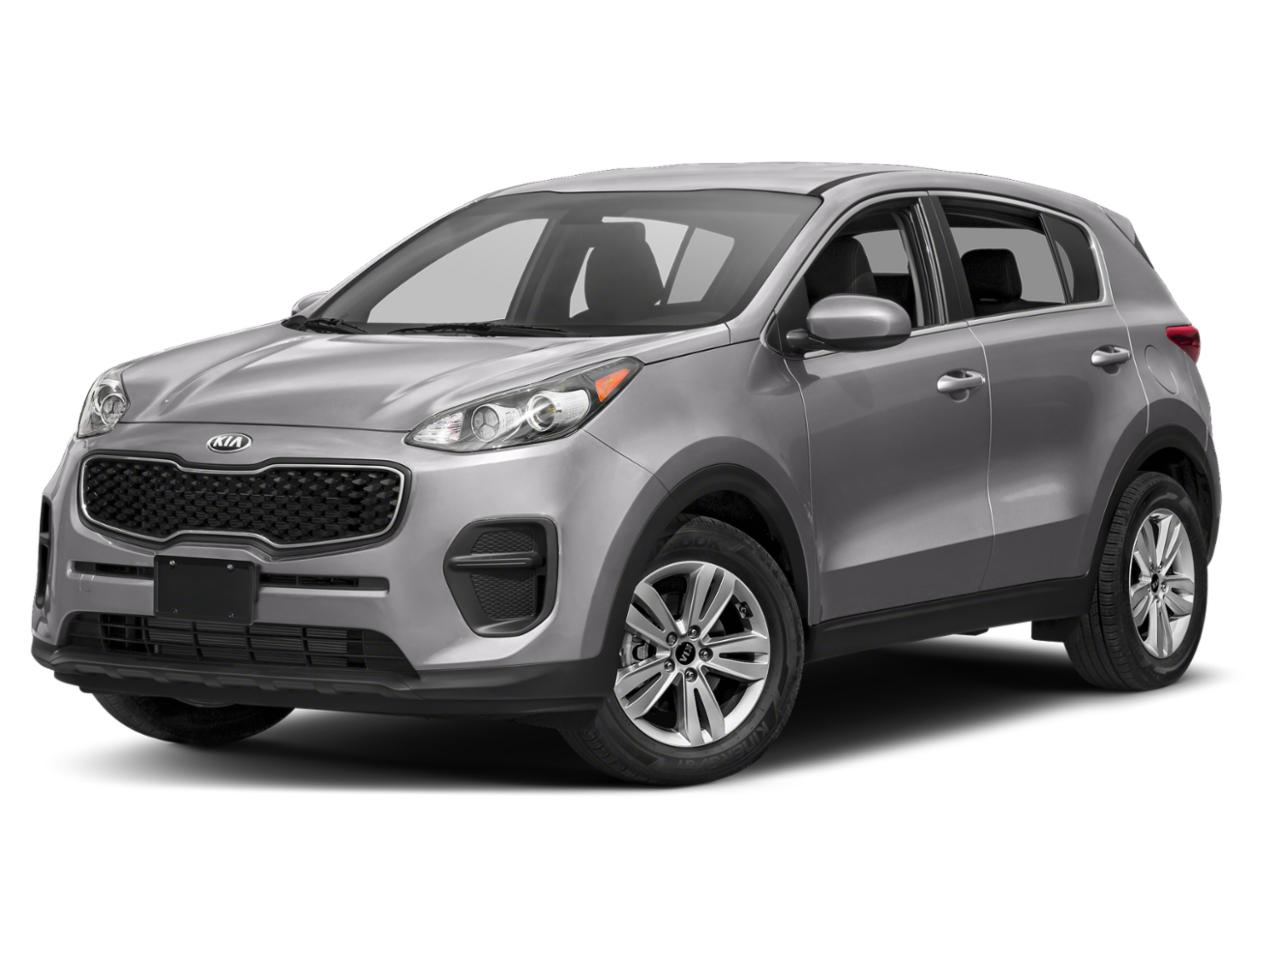 2018 Kia Sportage Vehicle Photo in North Jackson, OH 44451